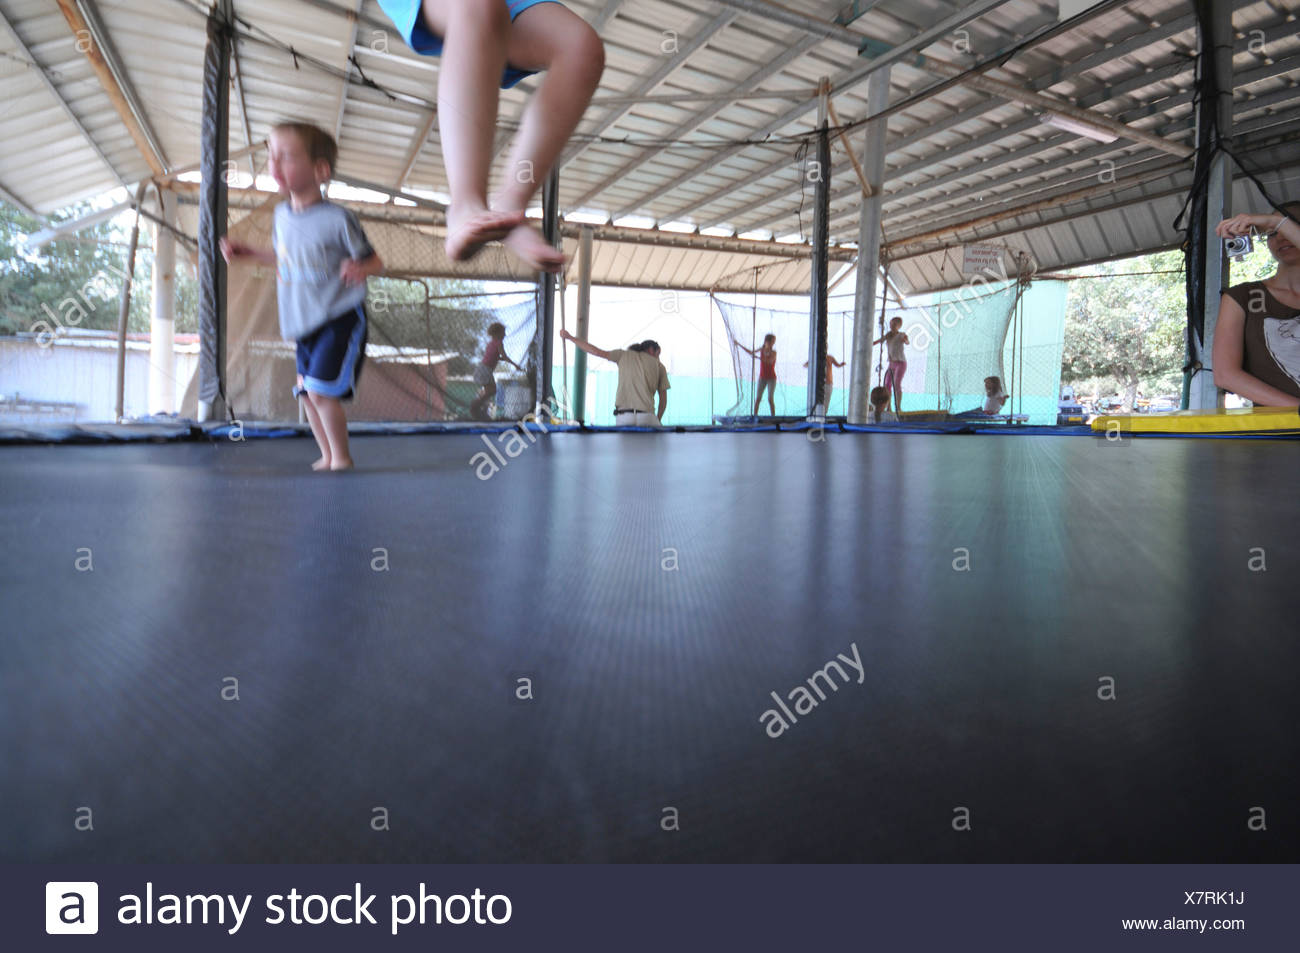 Trampoline Fitness Stock Photos Amp Trampoline Fitness Stock Images